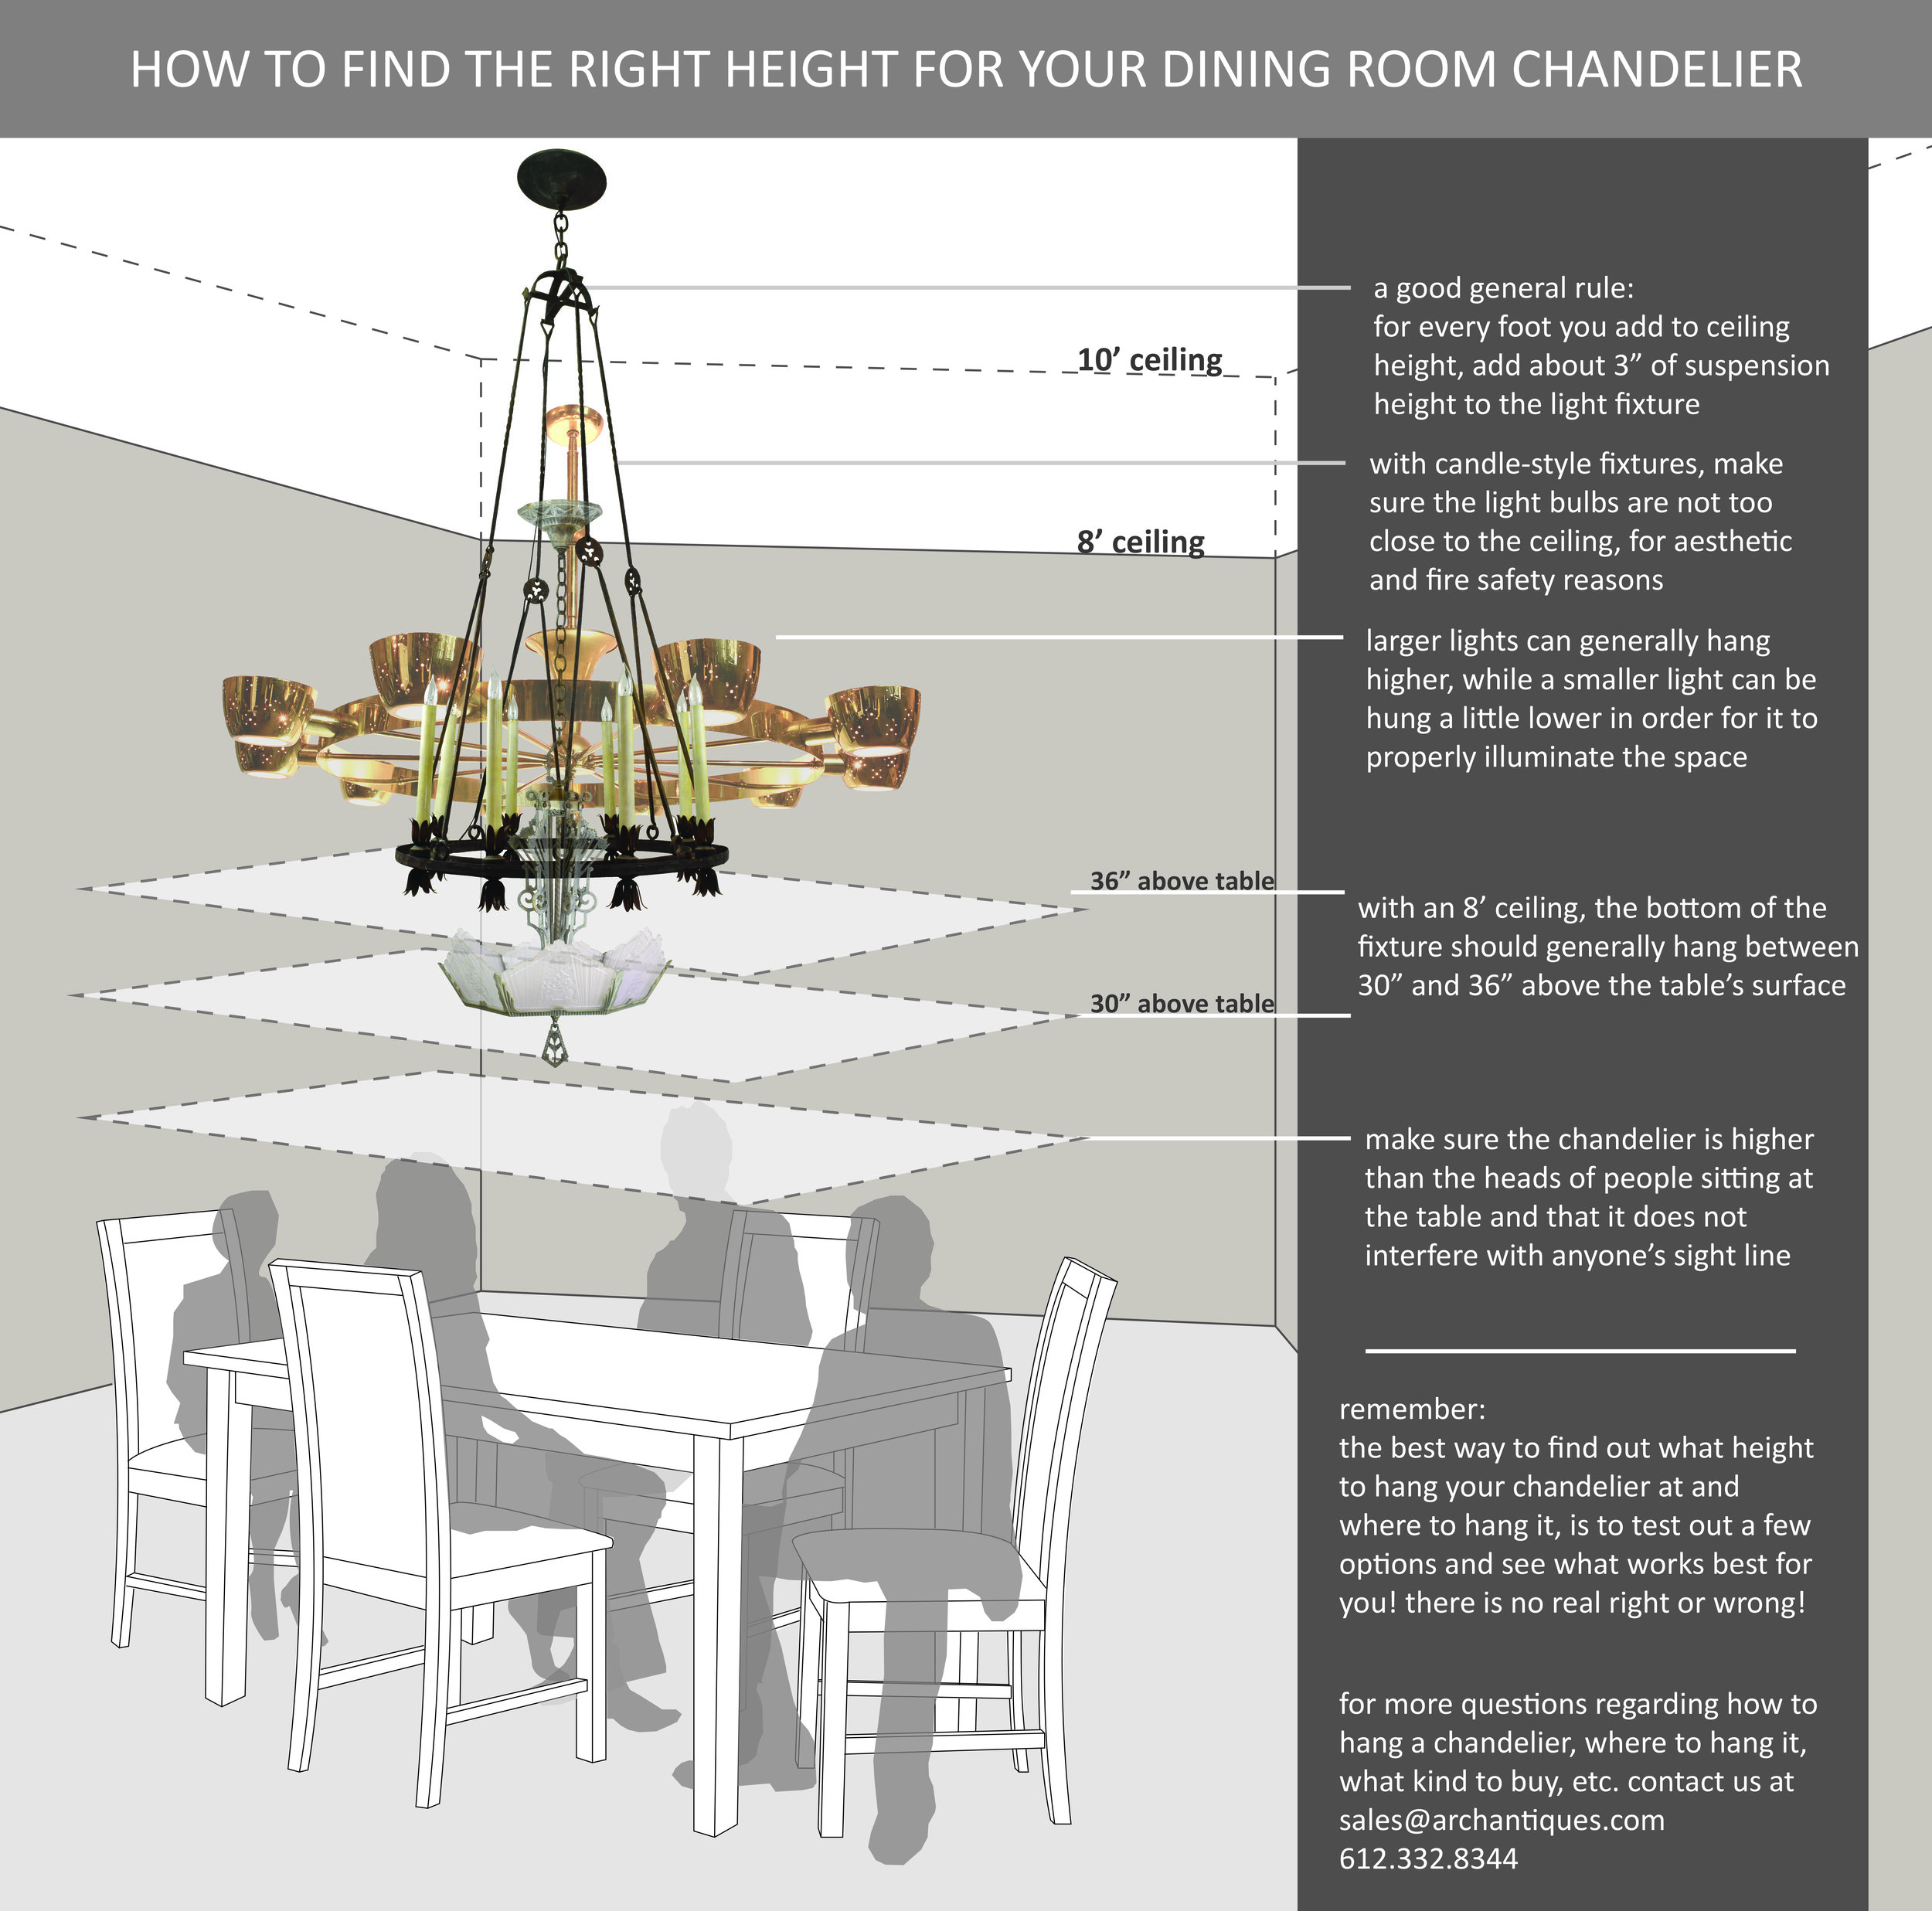 Chandelier Height 10 Foot Ceiling How To Find The Right Hanging Height For Your Chandelier